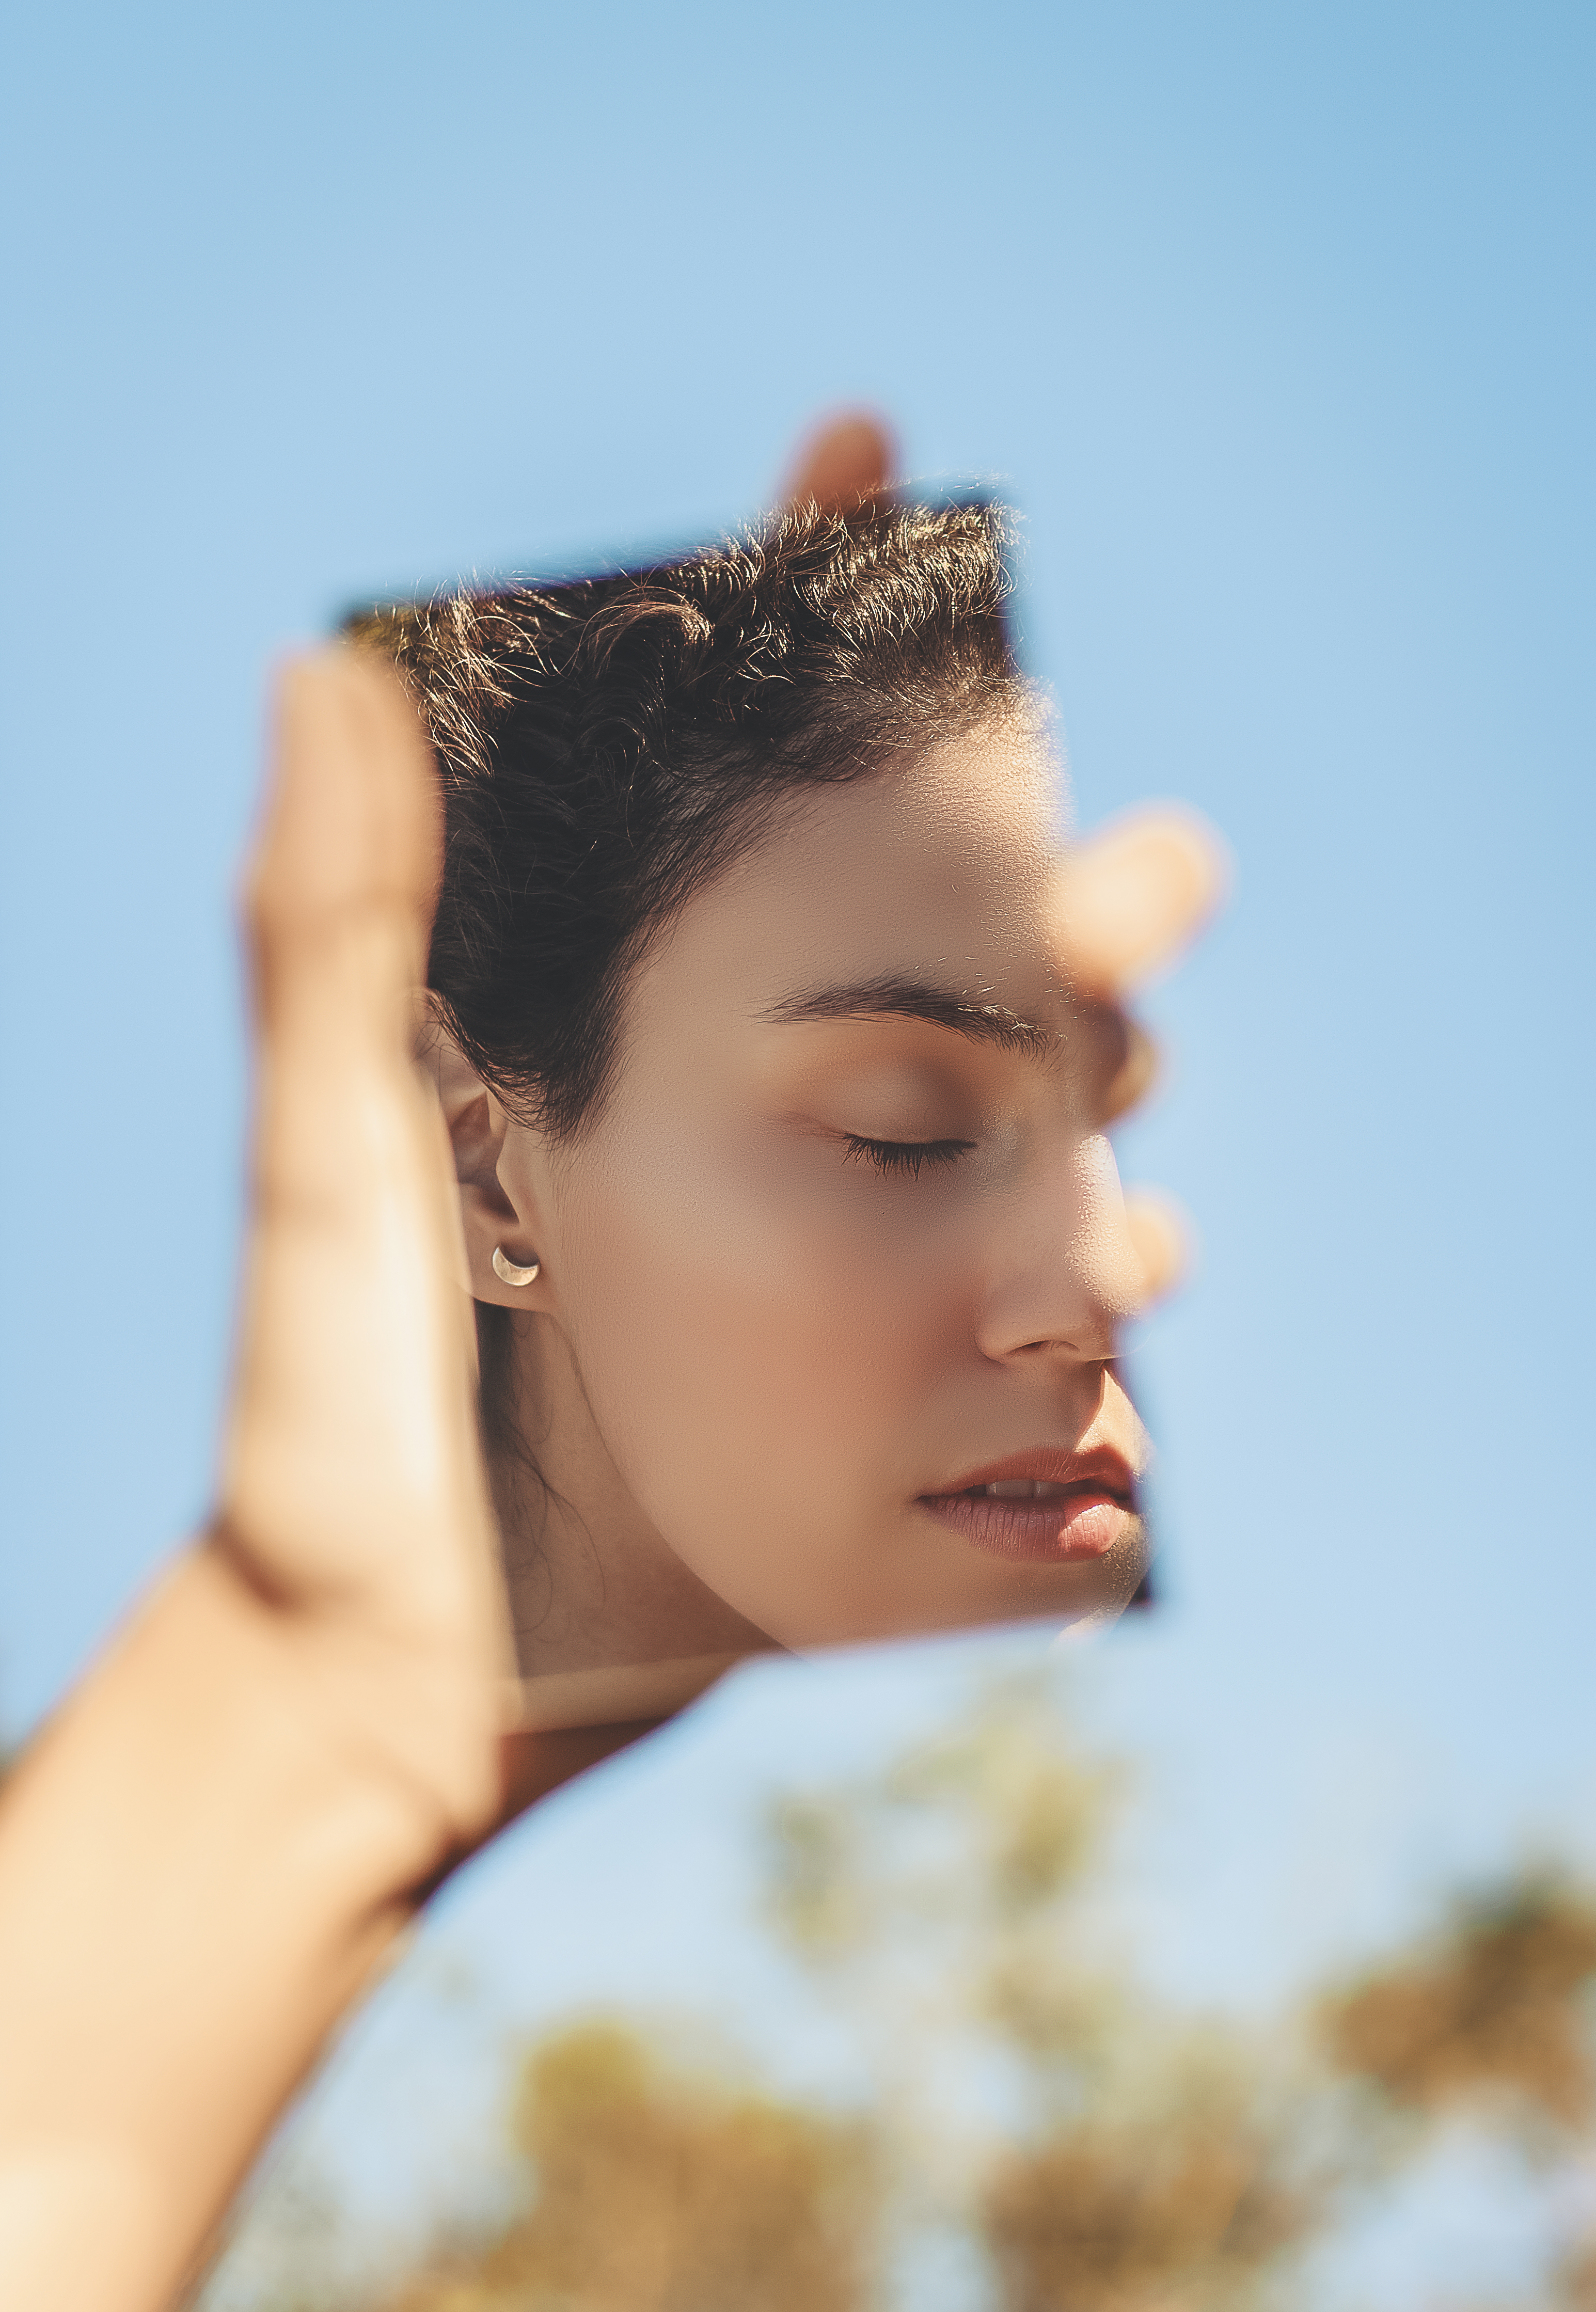 Photo Of Woman's Face In The Mirror